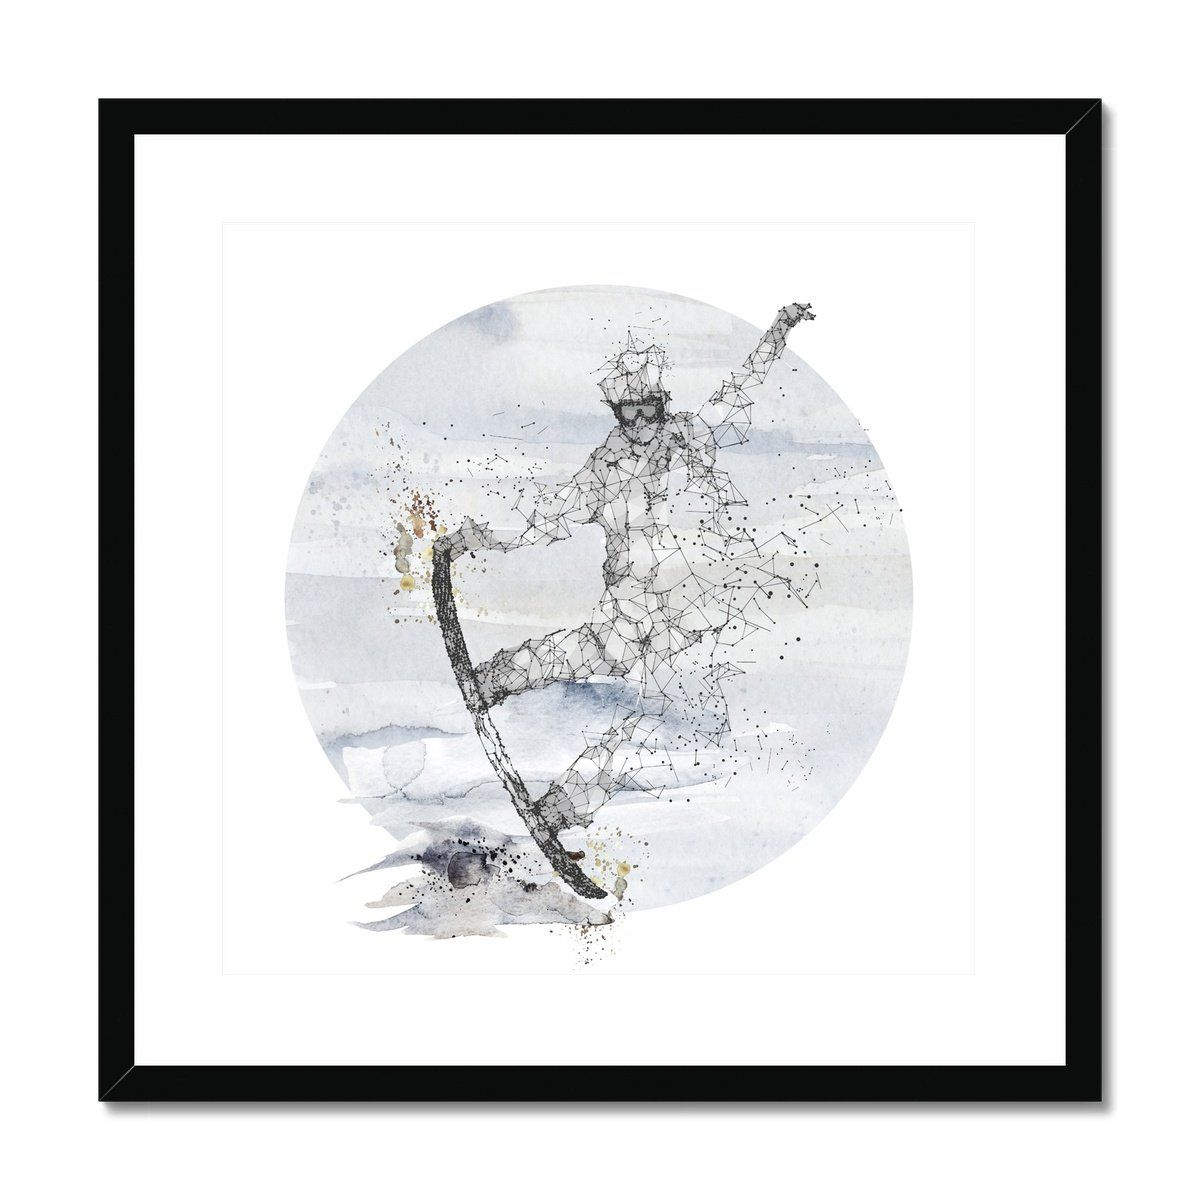 Snow boarder Framed & Mounted Print